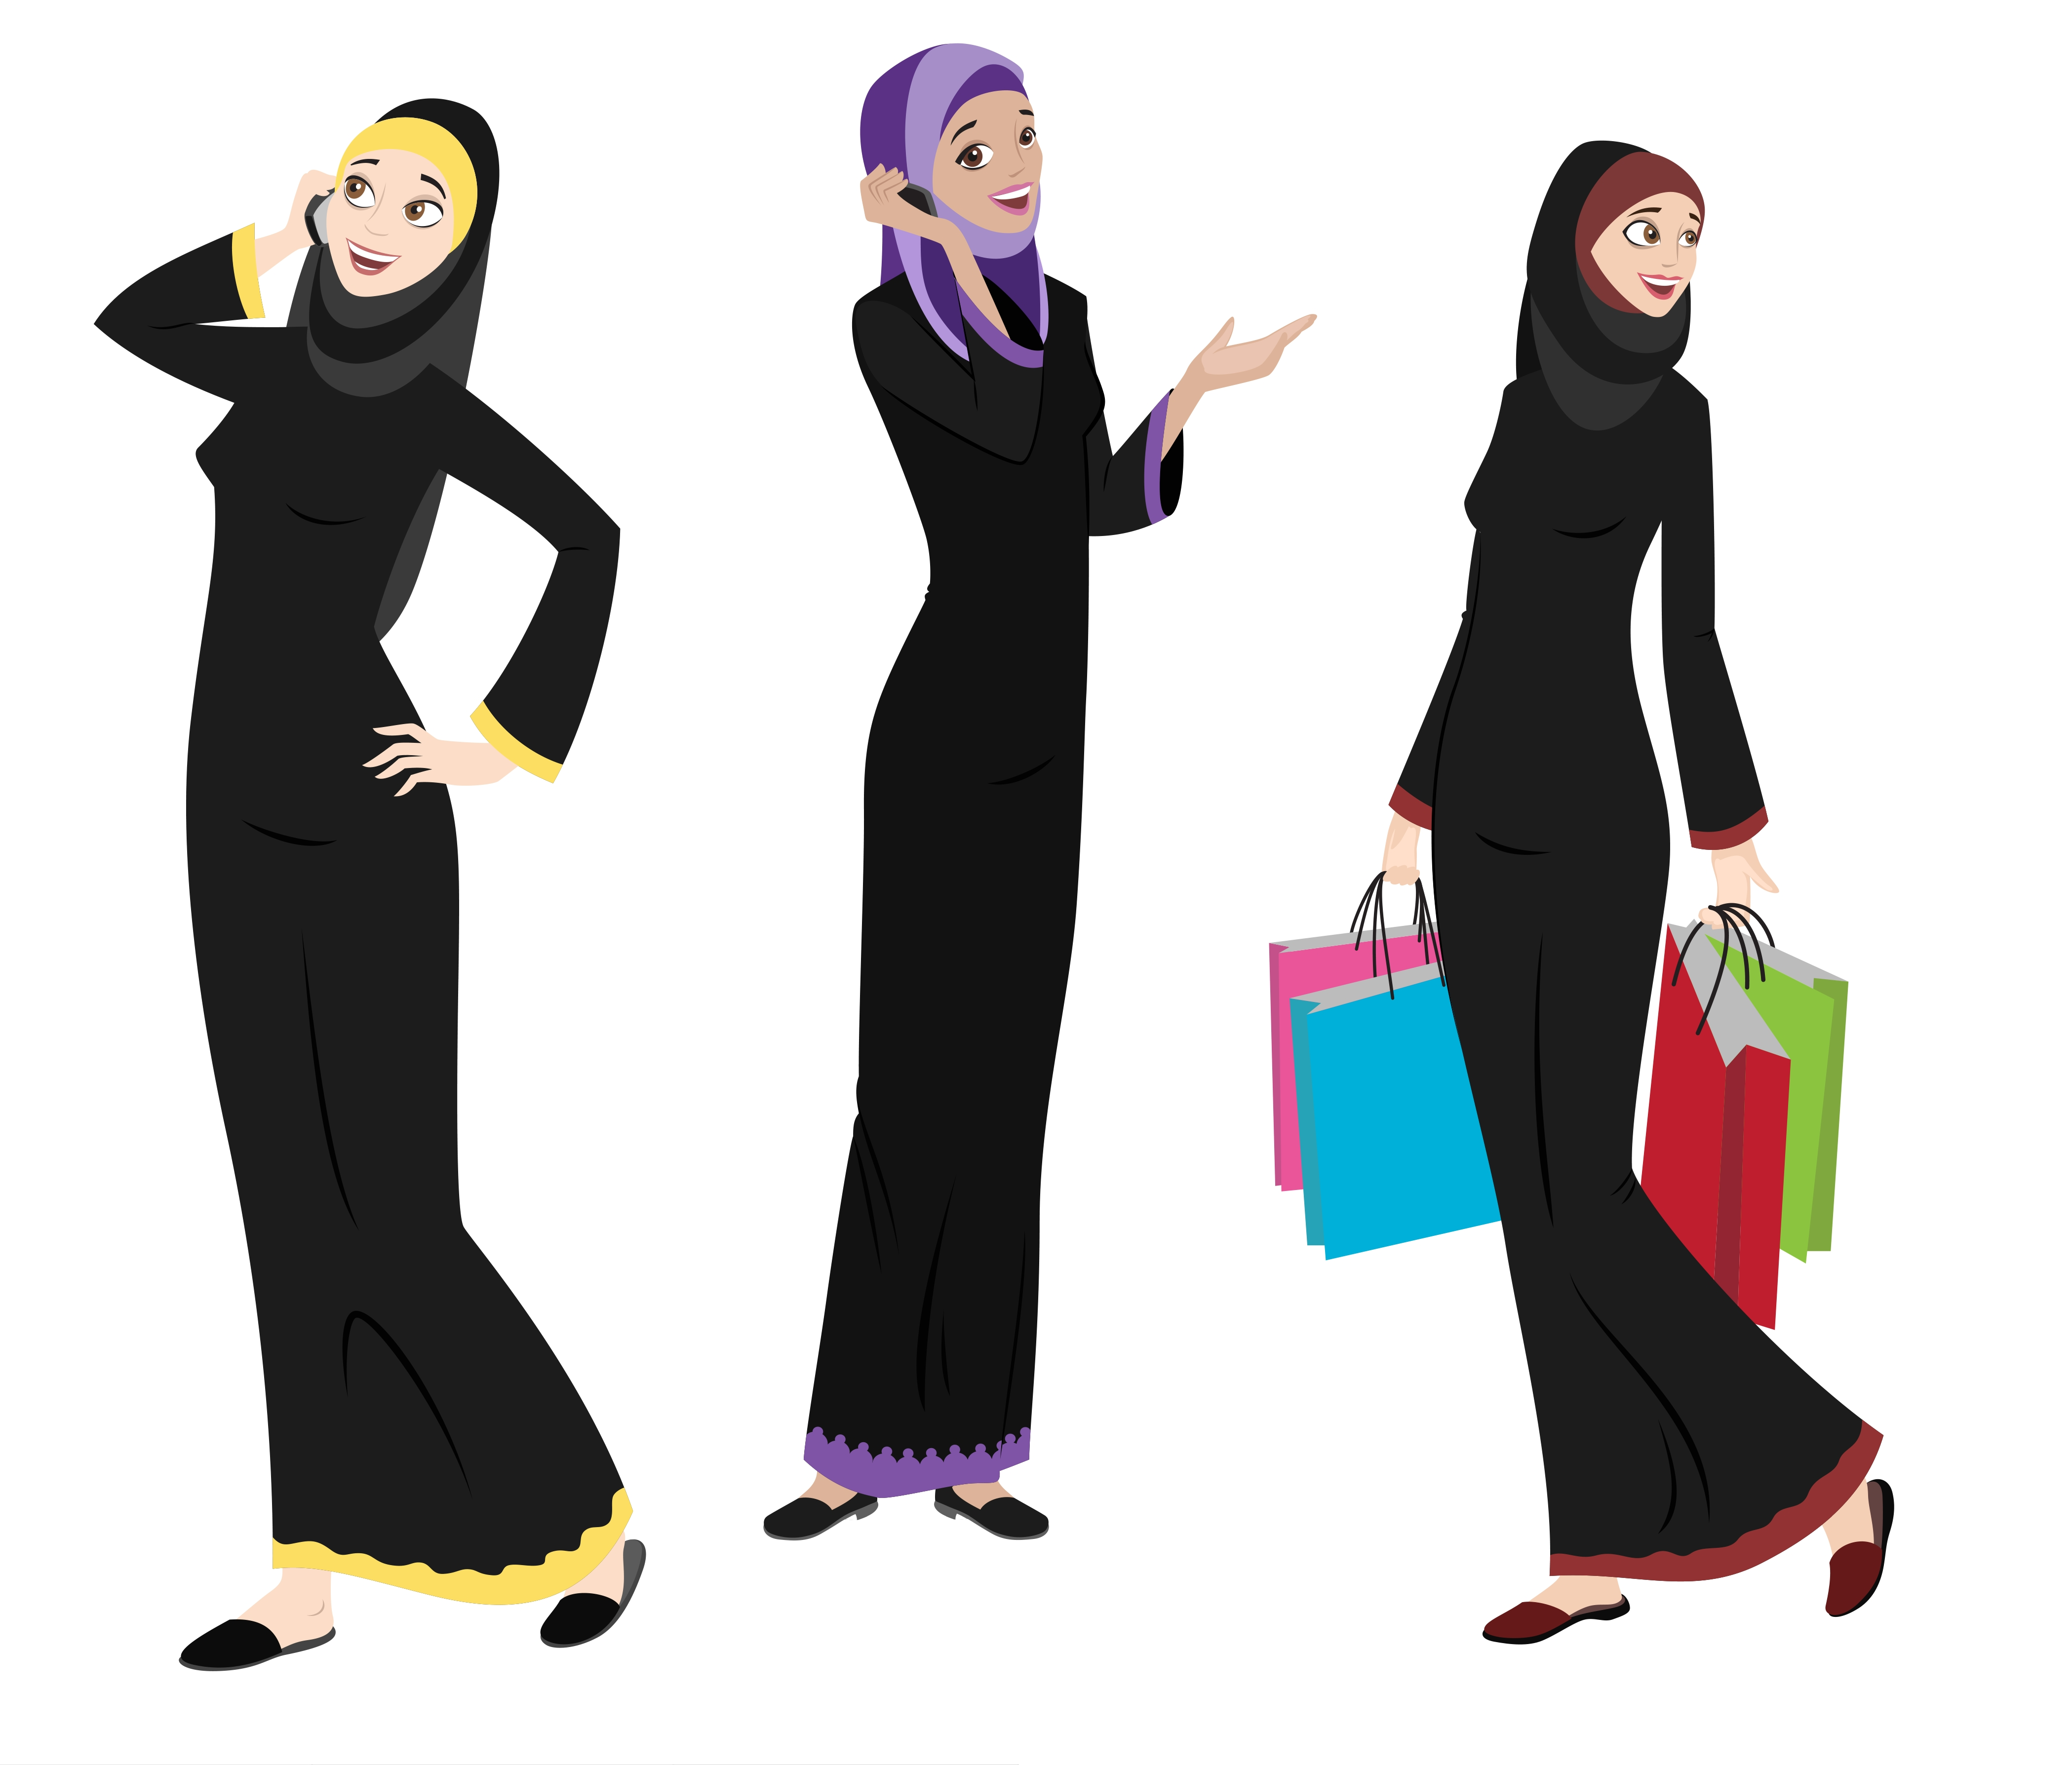 should muslim women wear the traditional hijab Free essay: should muslim women be required to wear the traditional hijab is a religious debate i was never aware existed, i just always believed it was.